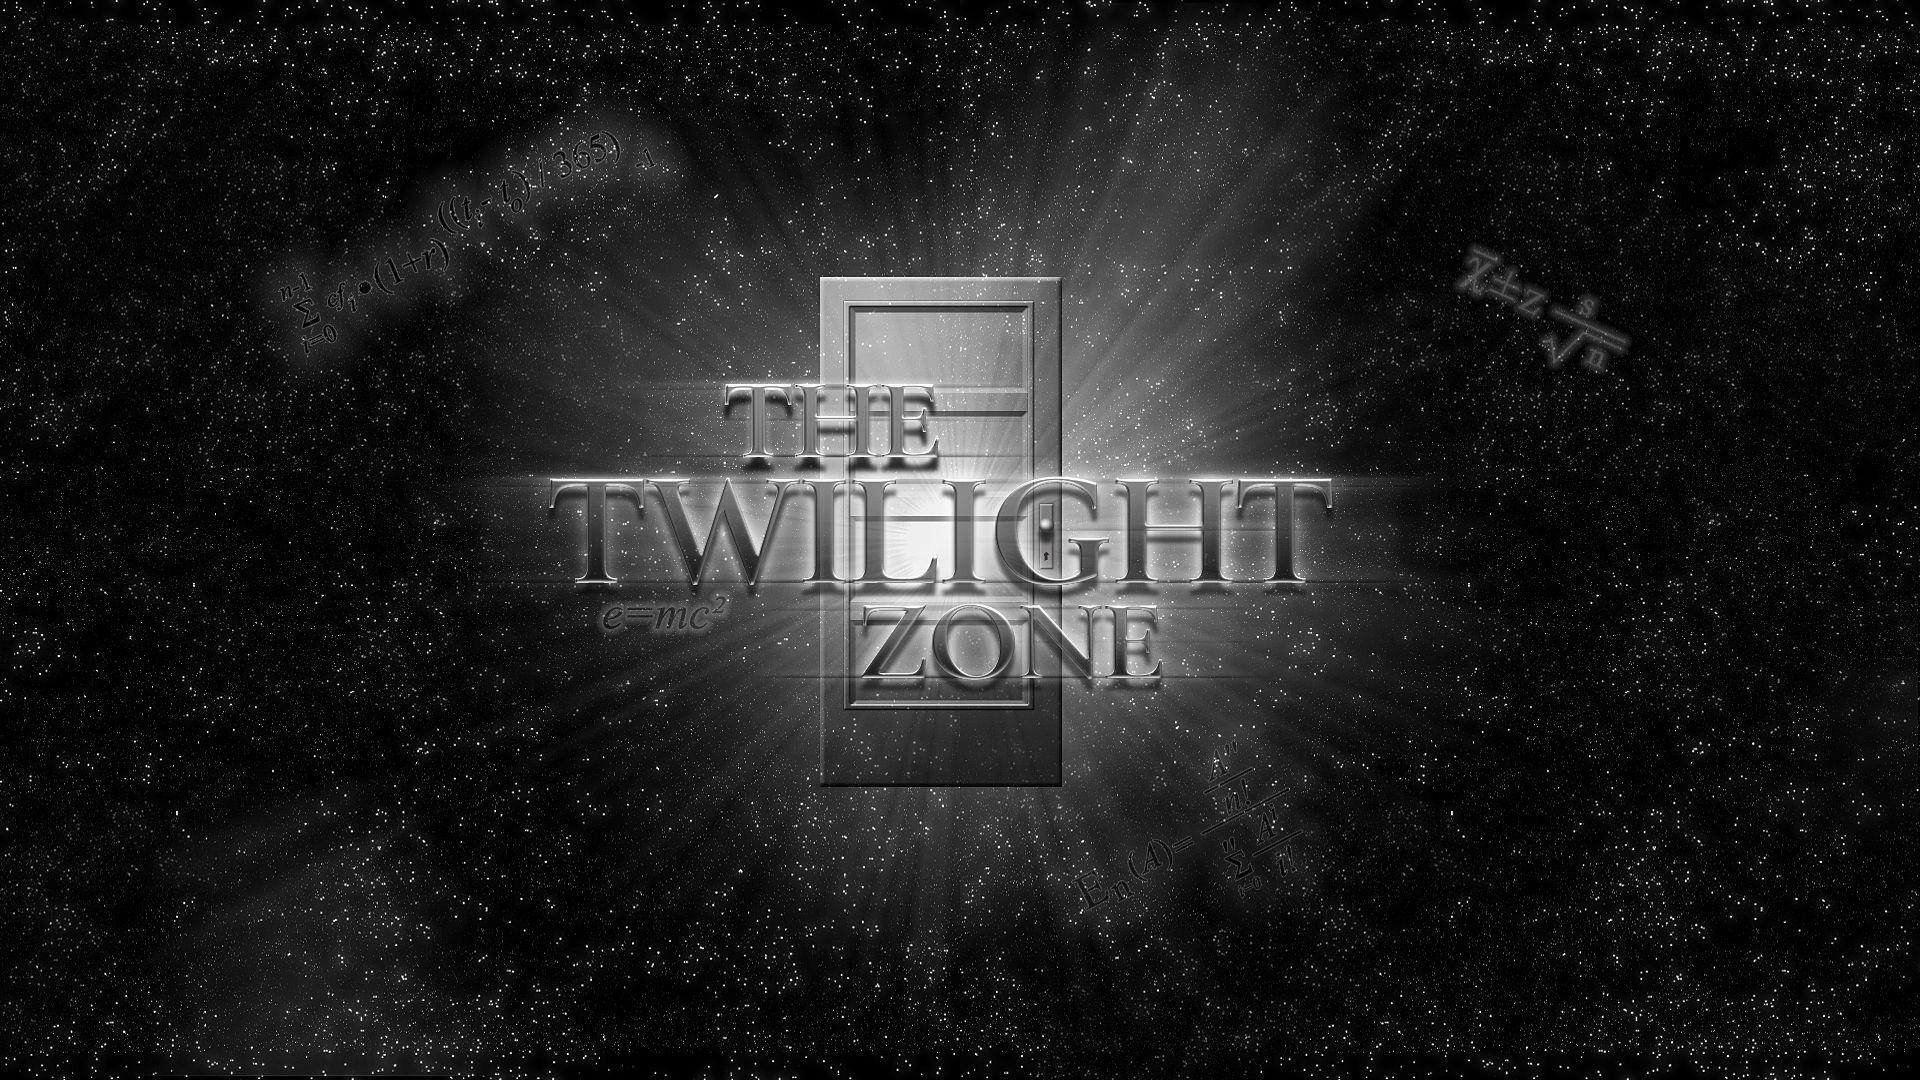 Best 62+ Twilight Zone Wallpapers on HipWallpapers